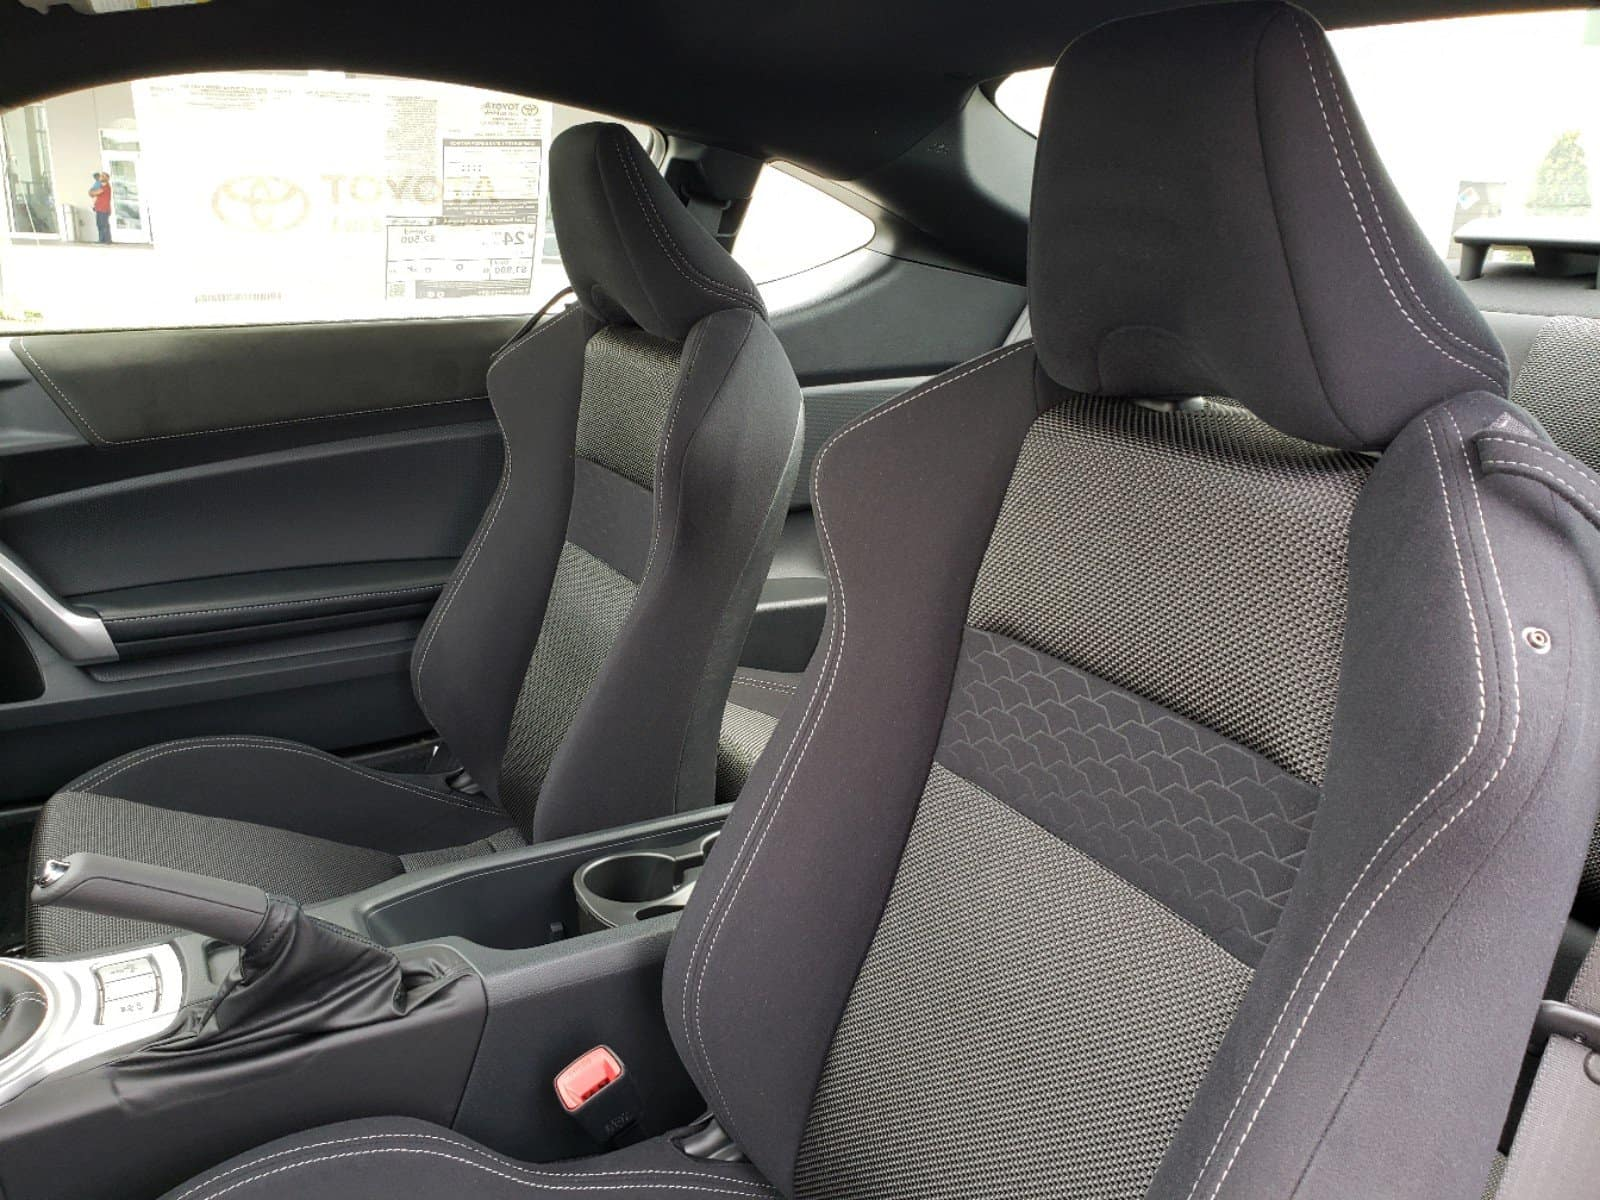 Check out the interior of the new N Charlotte Toyota 86.